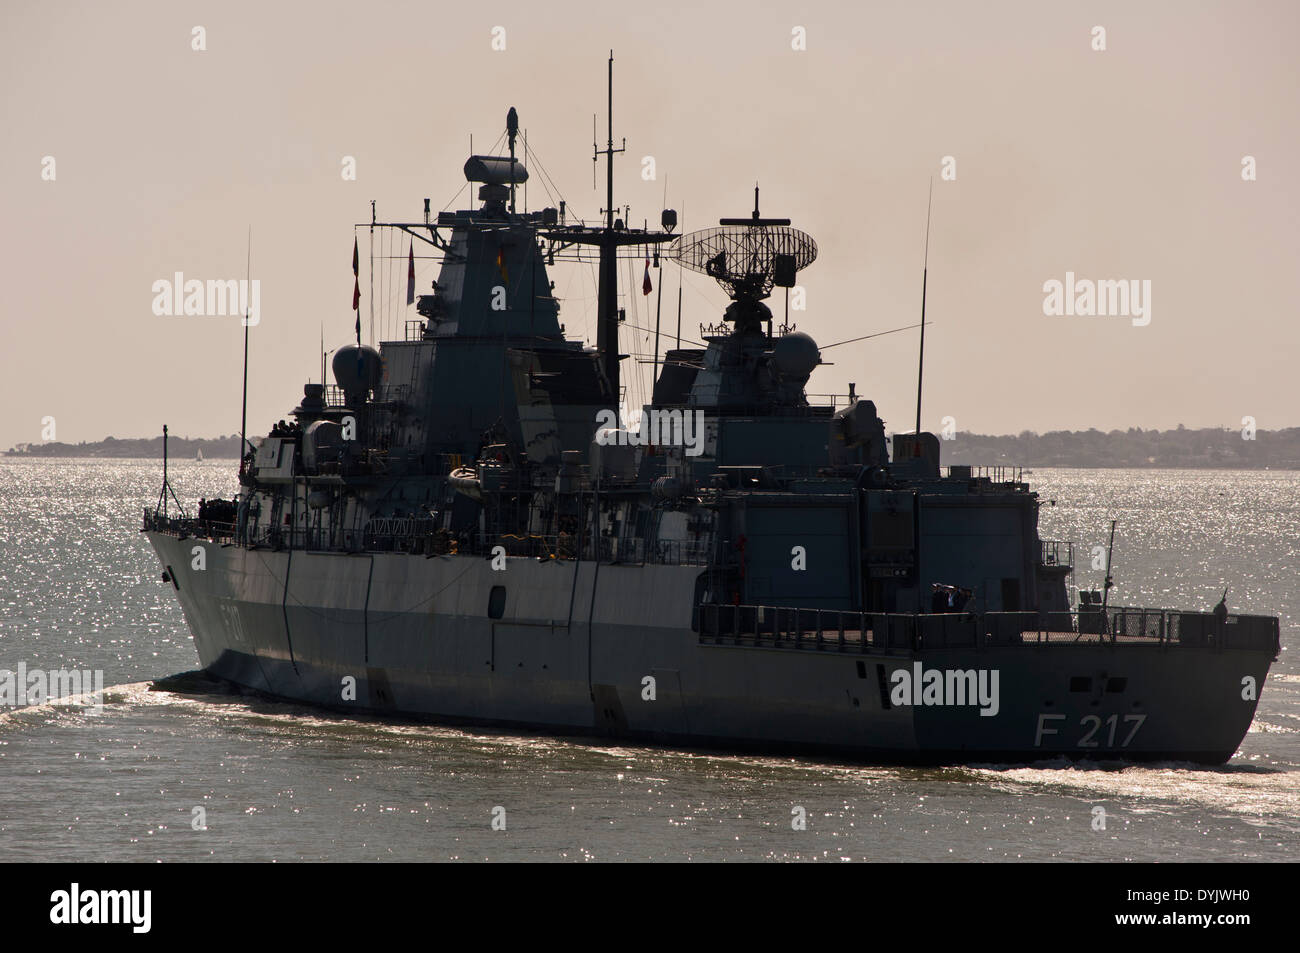 FGS Bayern Bavaria F217 Brandenburg class Frigate of the German Navy in the solent leaving Portsmouth - Stock Image